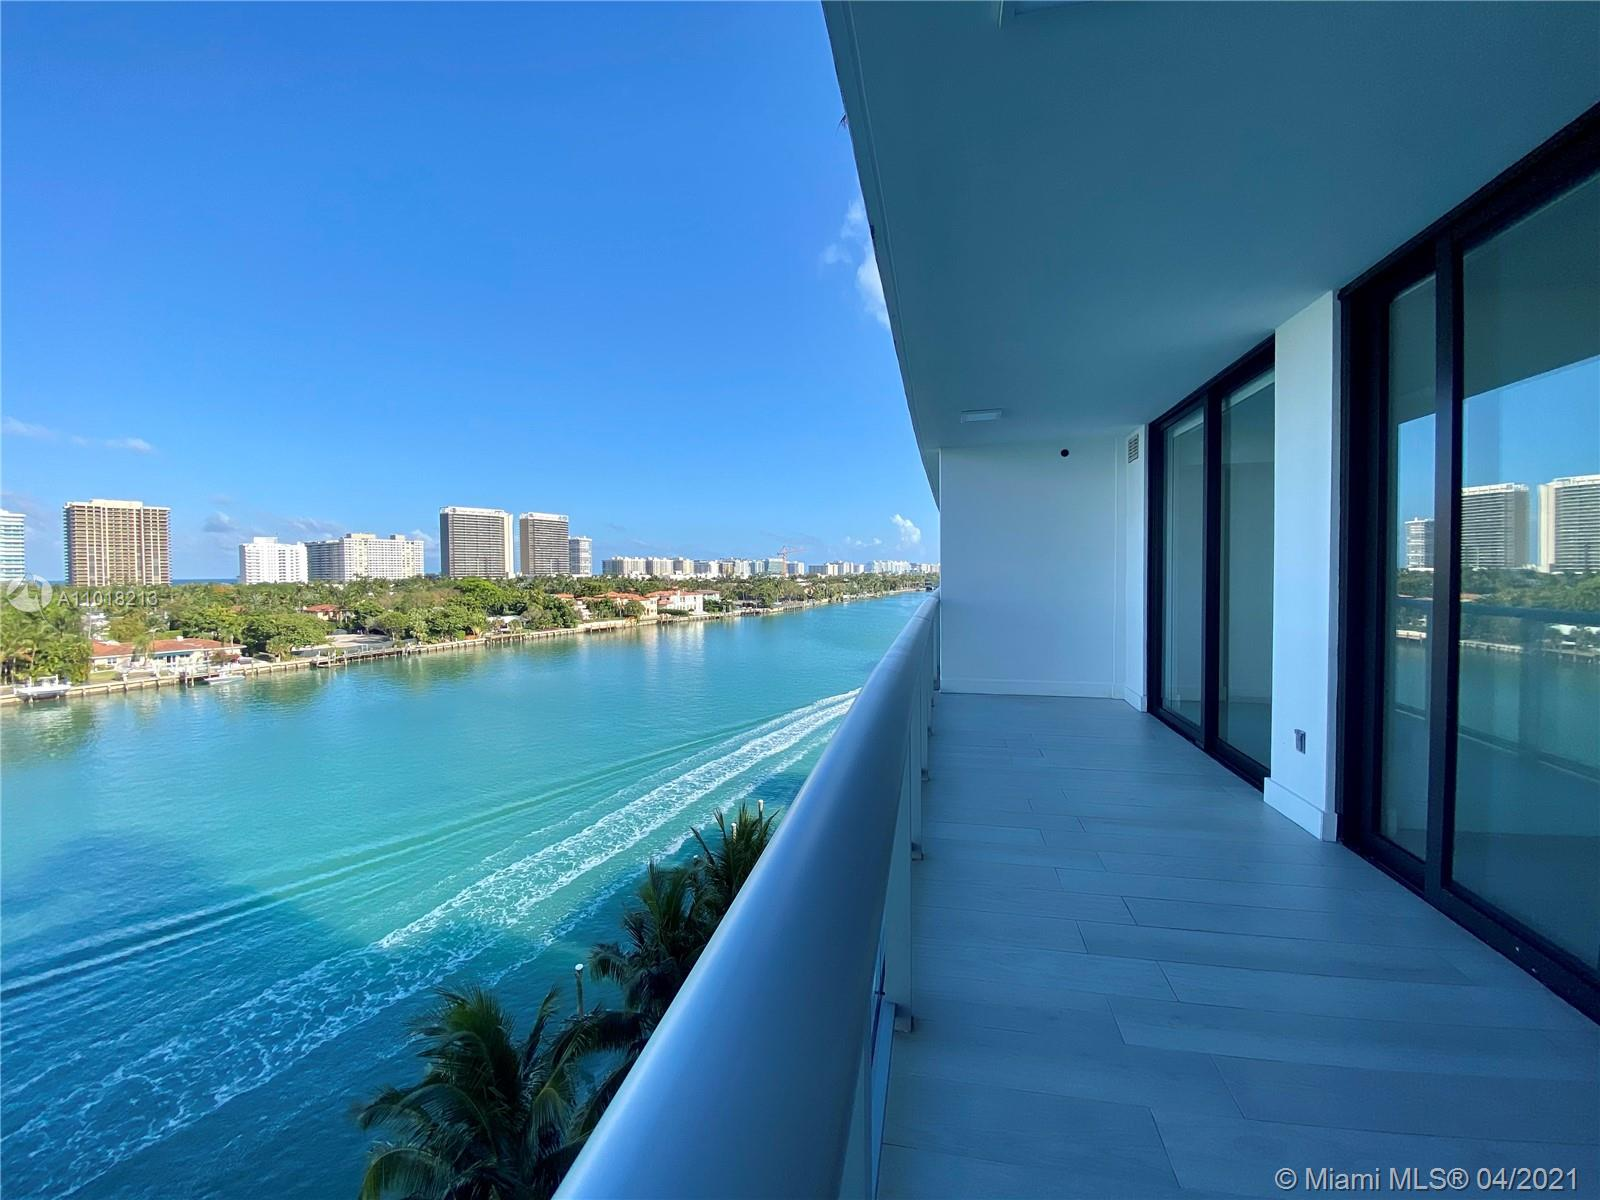 Bay Harbor's most prestigious boutique building. 1 Bedroom Plus Den with 2 complete bathrooms,  Master bedroom with walk-in closet, amazing views of the inter coast, ocean and city of Bal Harbour. Additional features includes 1 Storage unit and 2 Parking spaces assigned. Live walking distance to the Bal Harbour Shops, restaurants, beach and more.